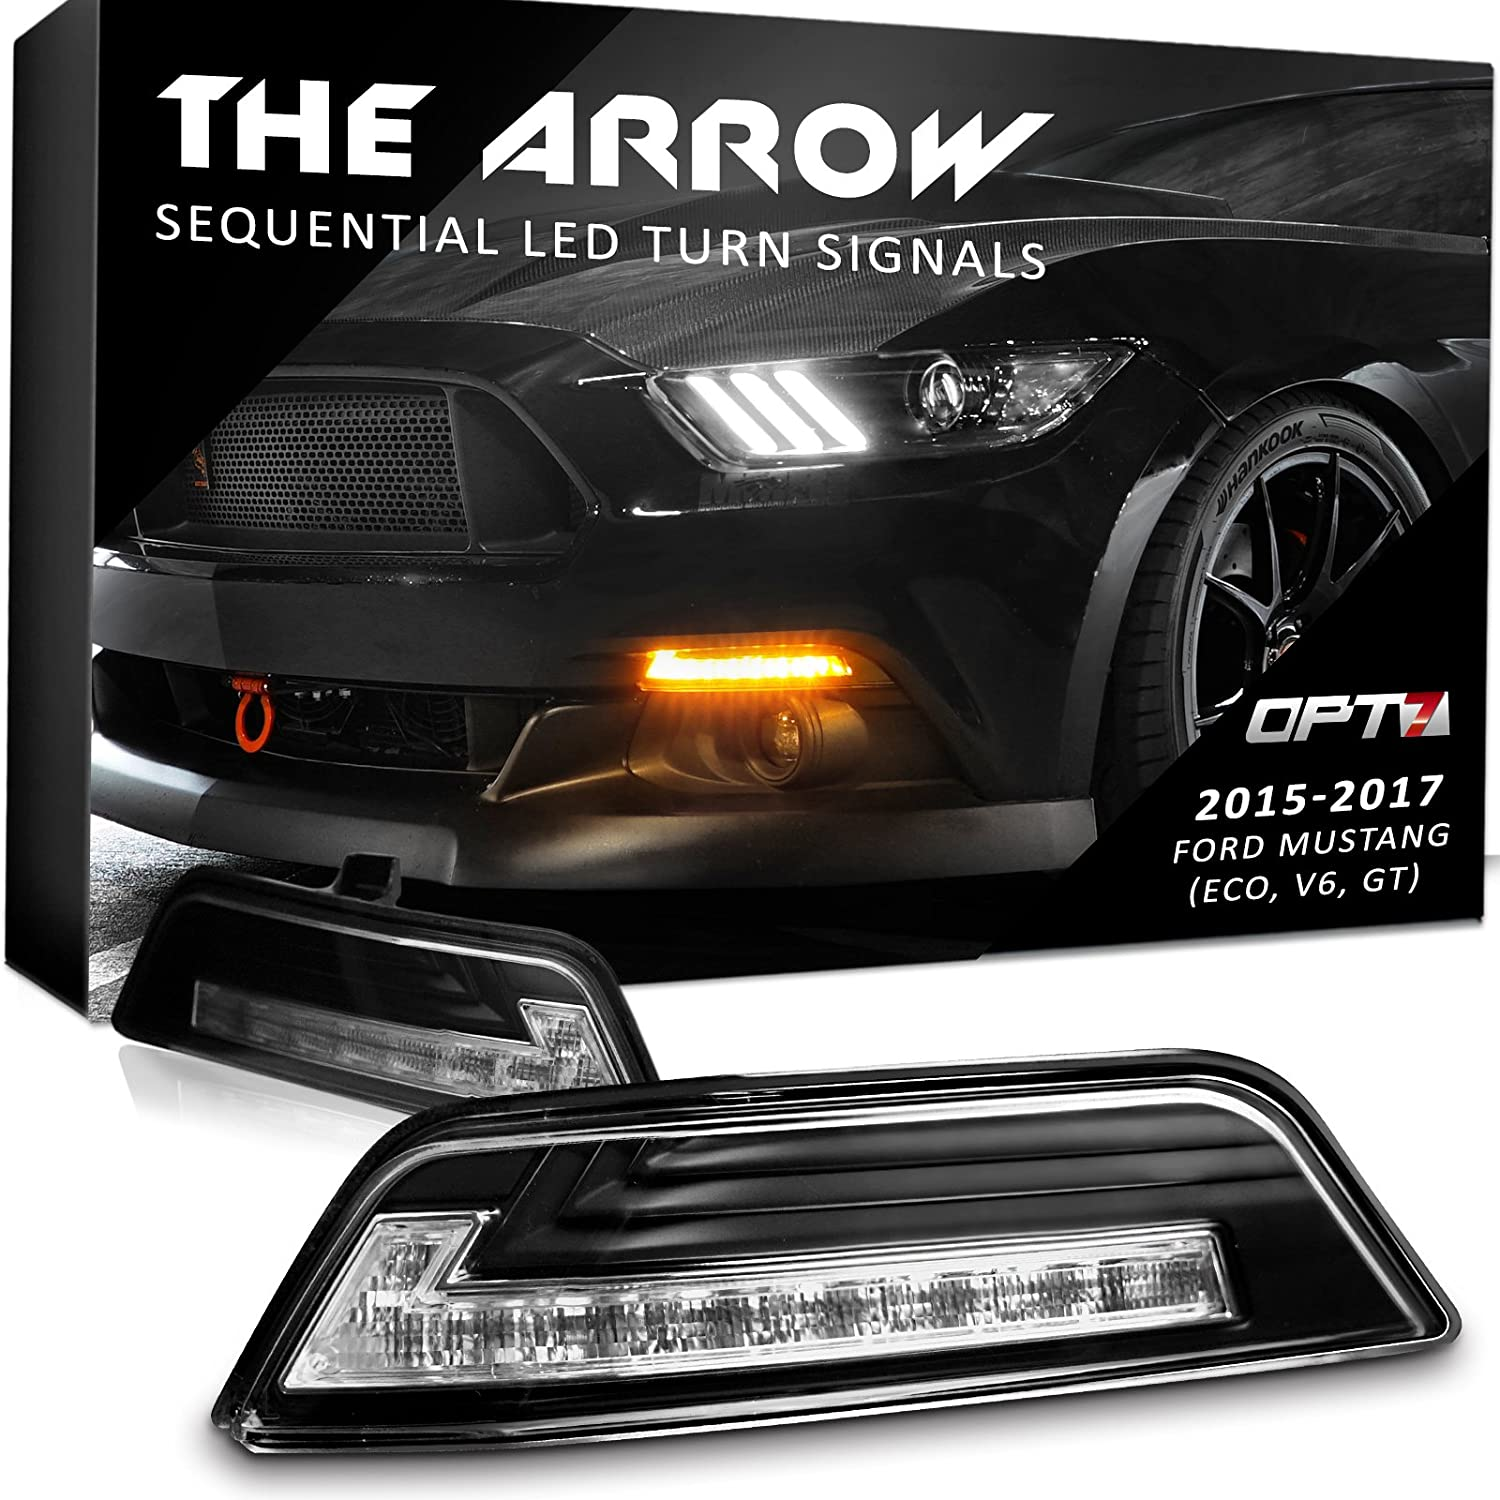 /& Shelby Mustang Head Light tint for 2005,06,07,08,09 GT pre cut no trim! V6